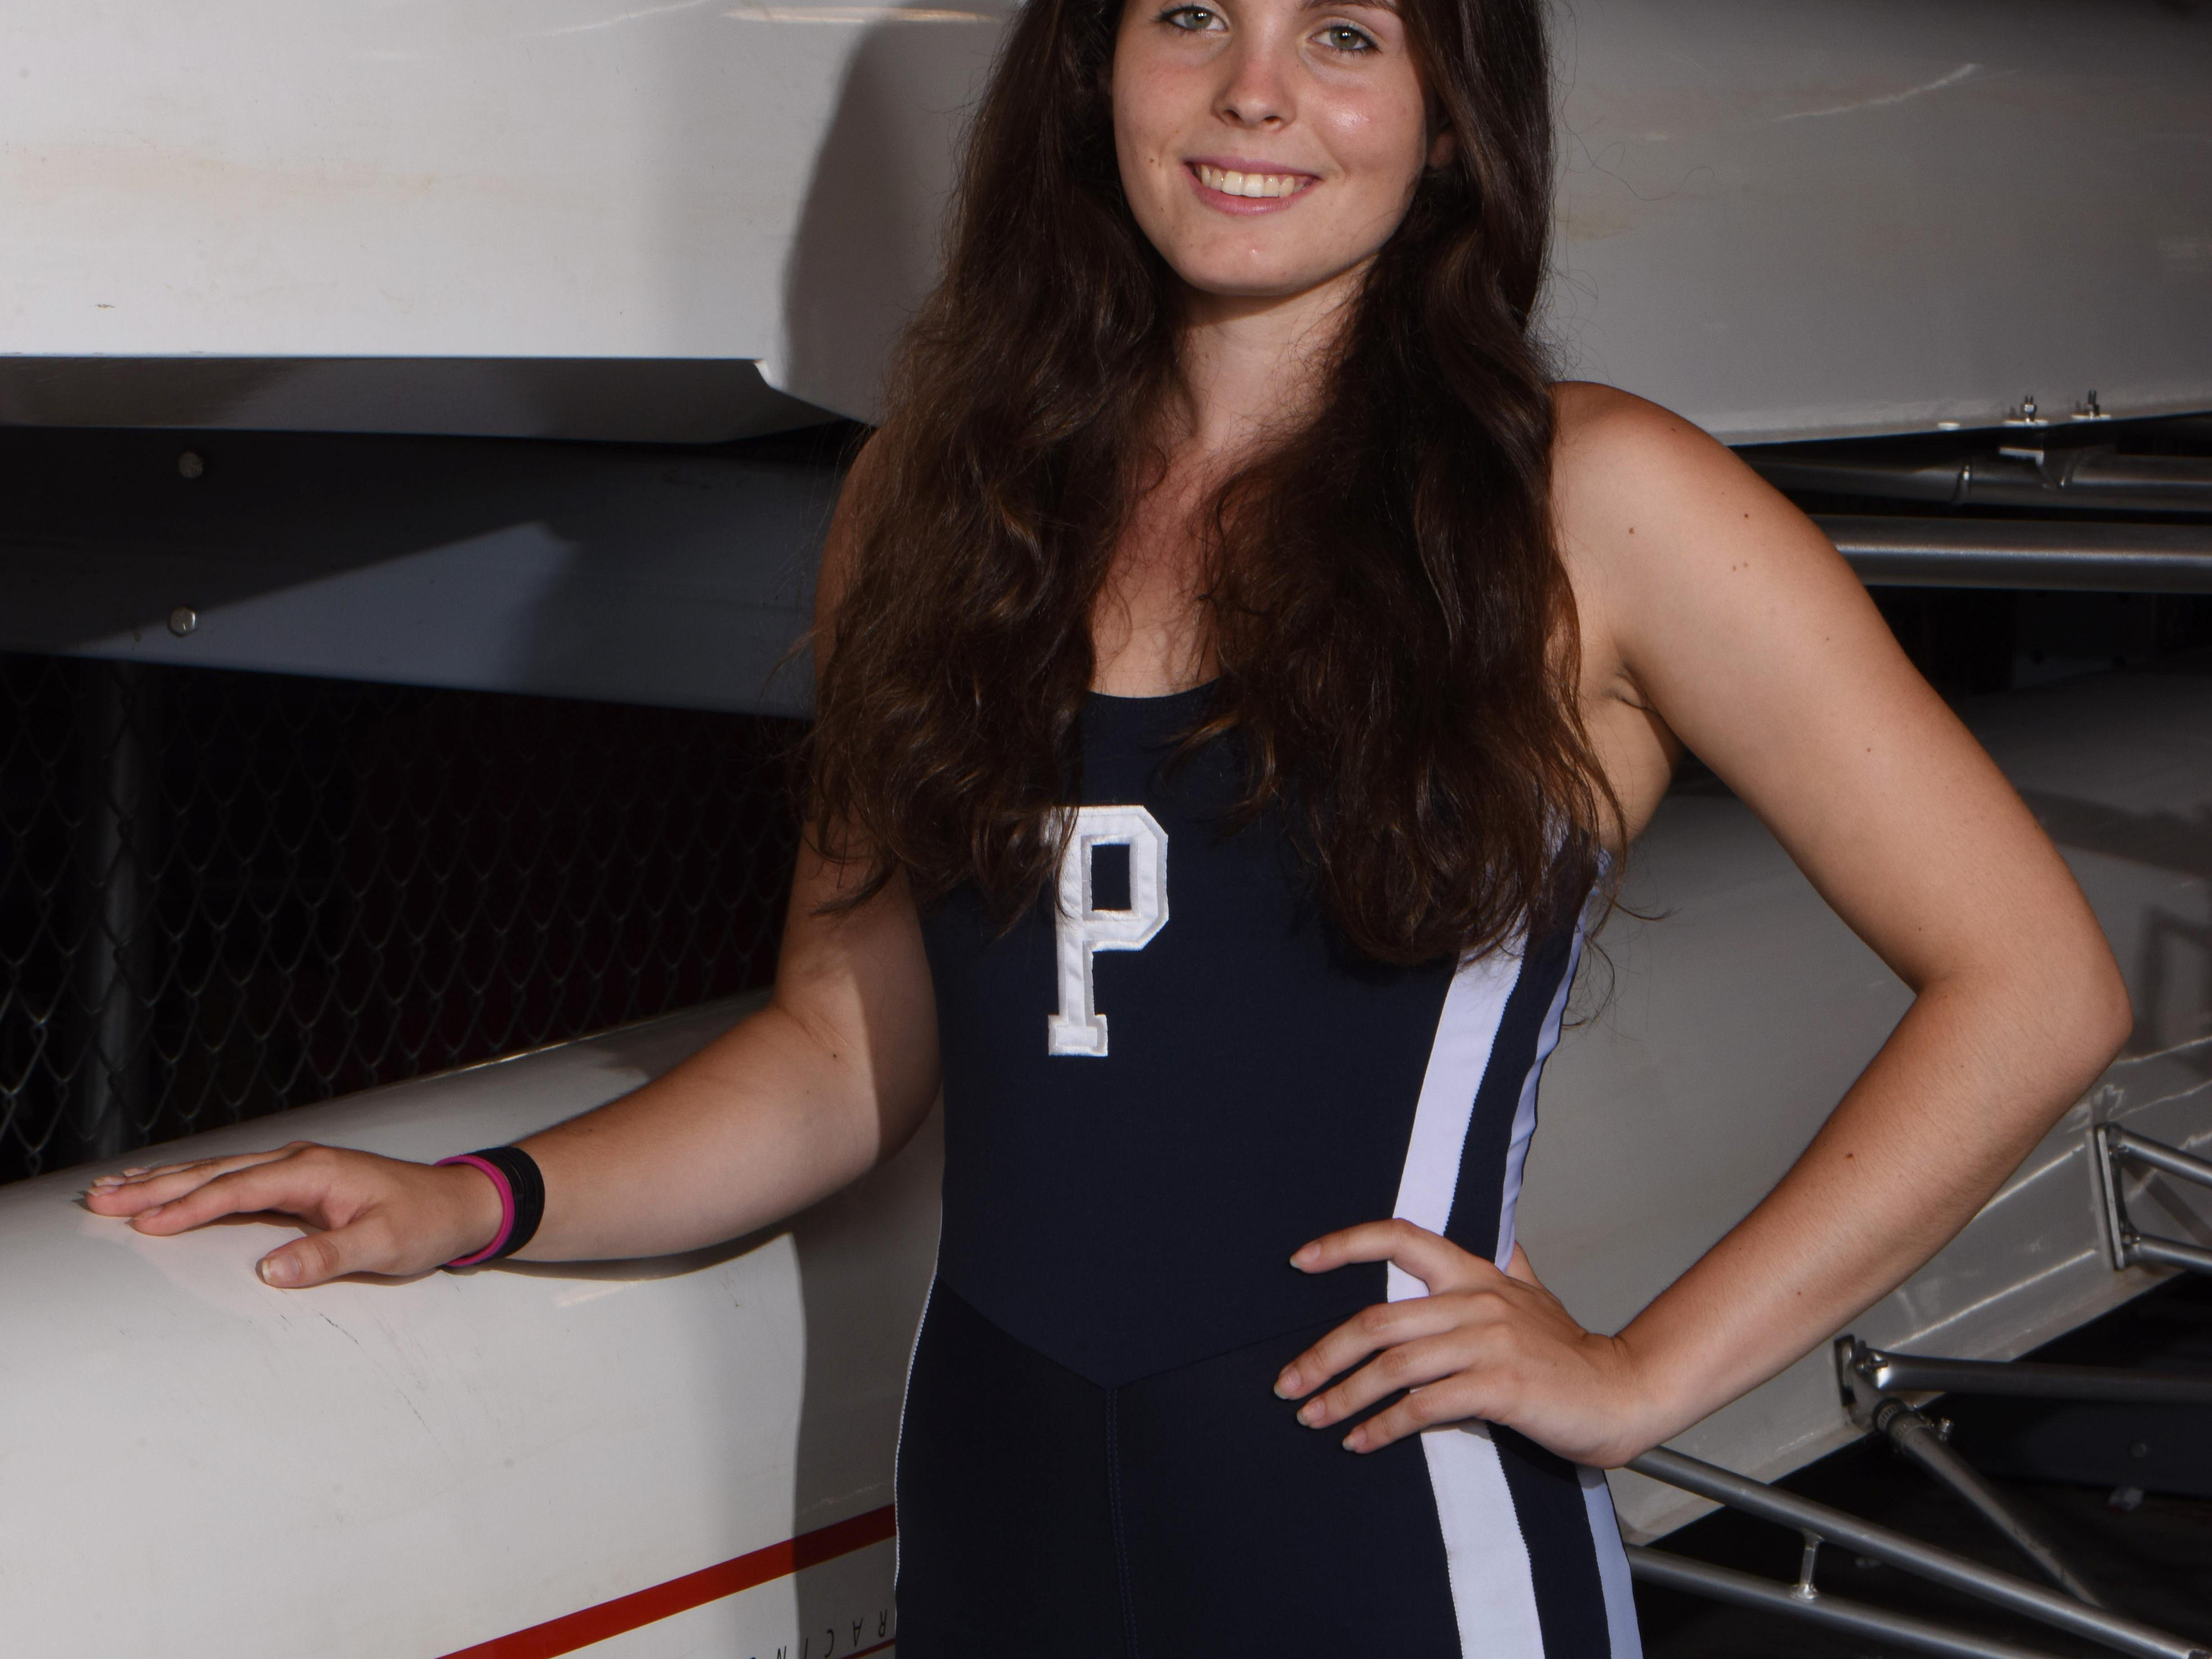 The Poughkeepsie High School lightweight quad boat member, second seat Anna O'Shea at the Hudson River Rowing Association boat house in Poughkeepsie on Thursday.